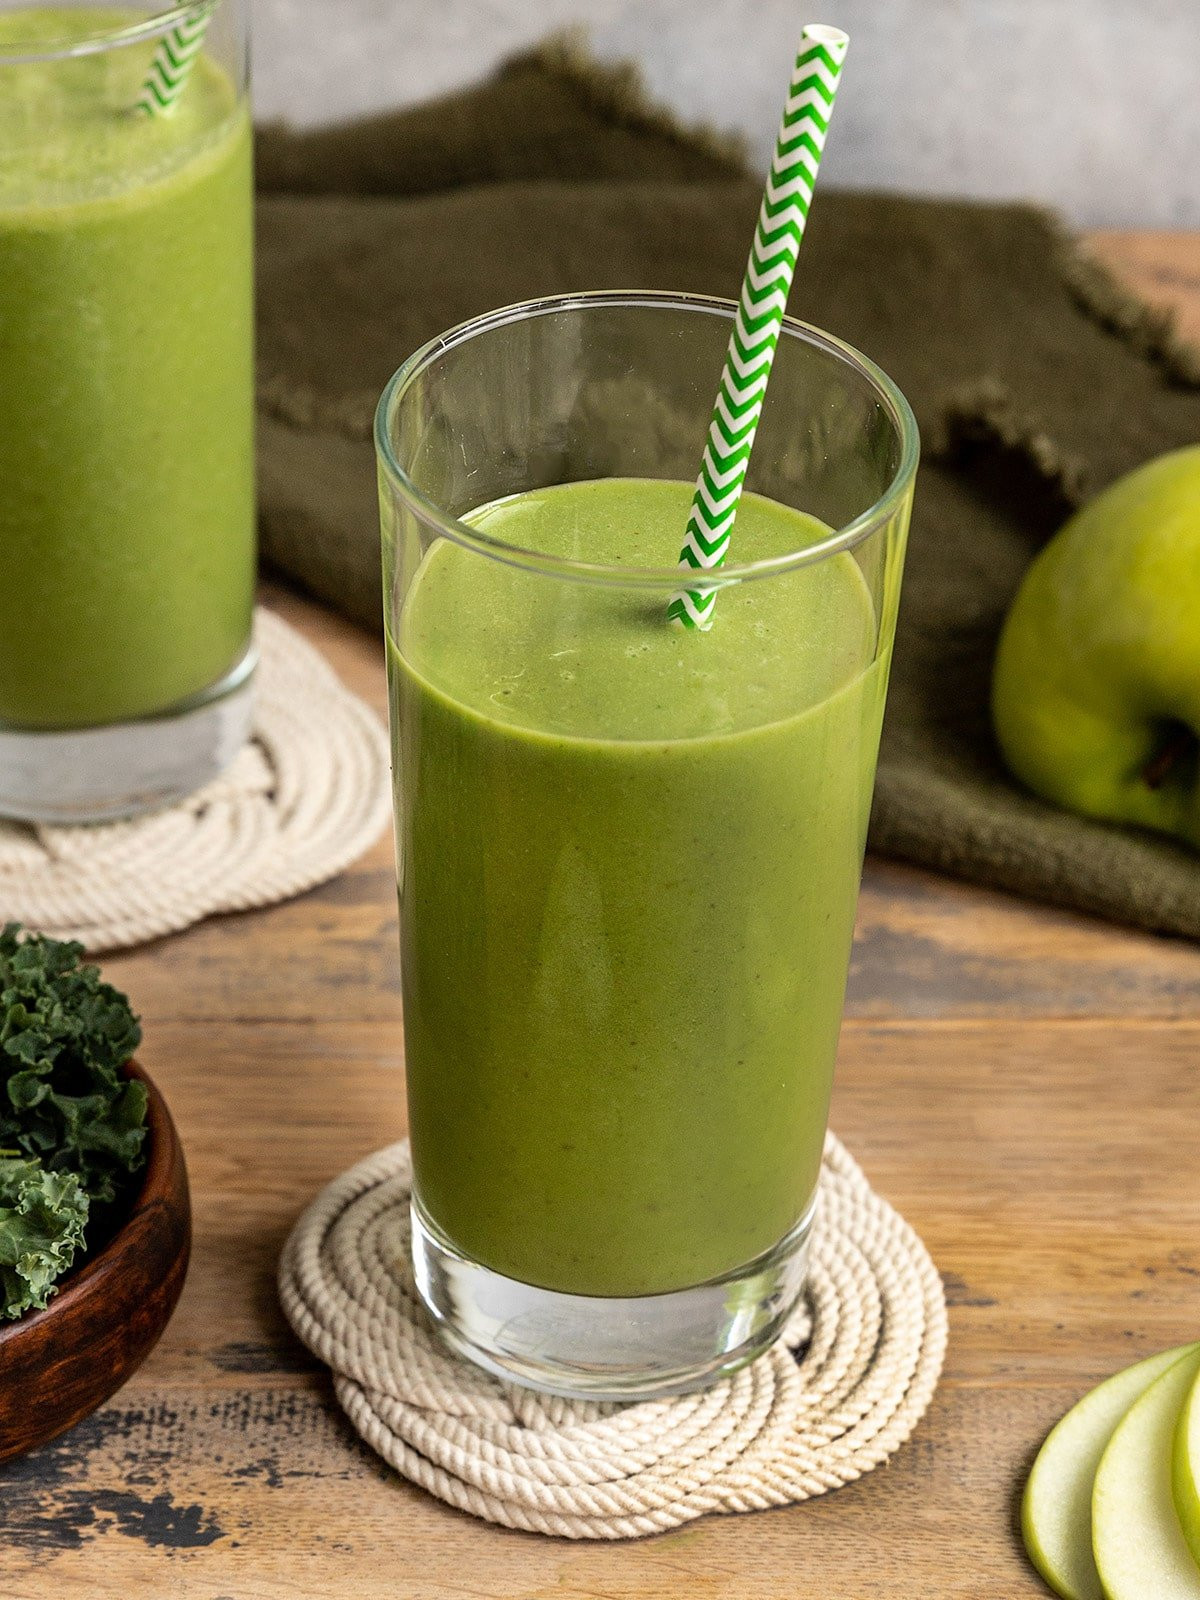 green smoothie in a glass with a green and white striped paper straw